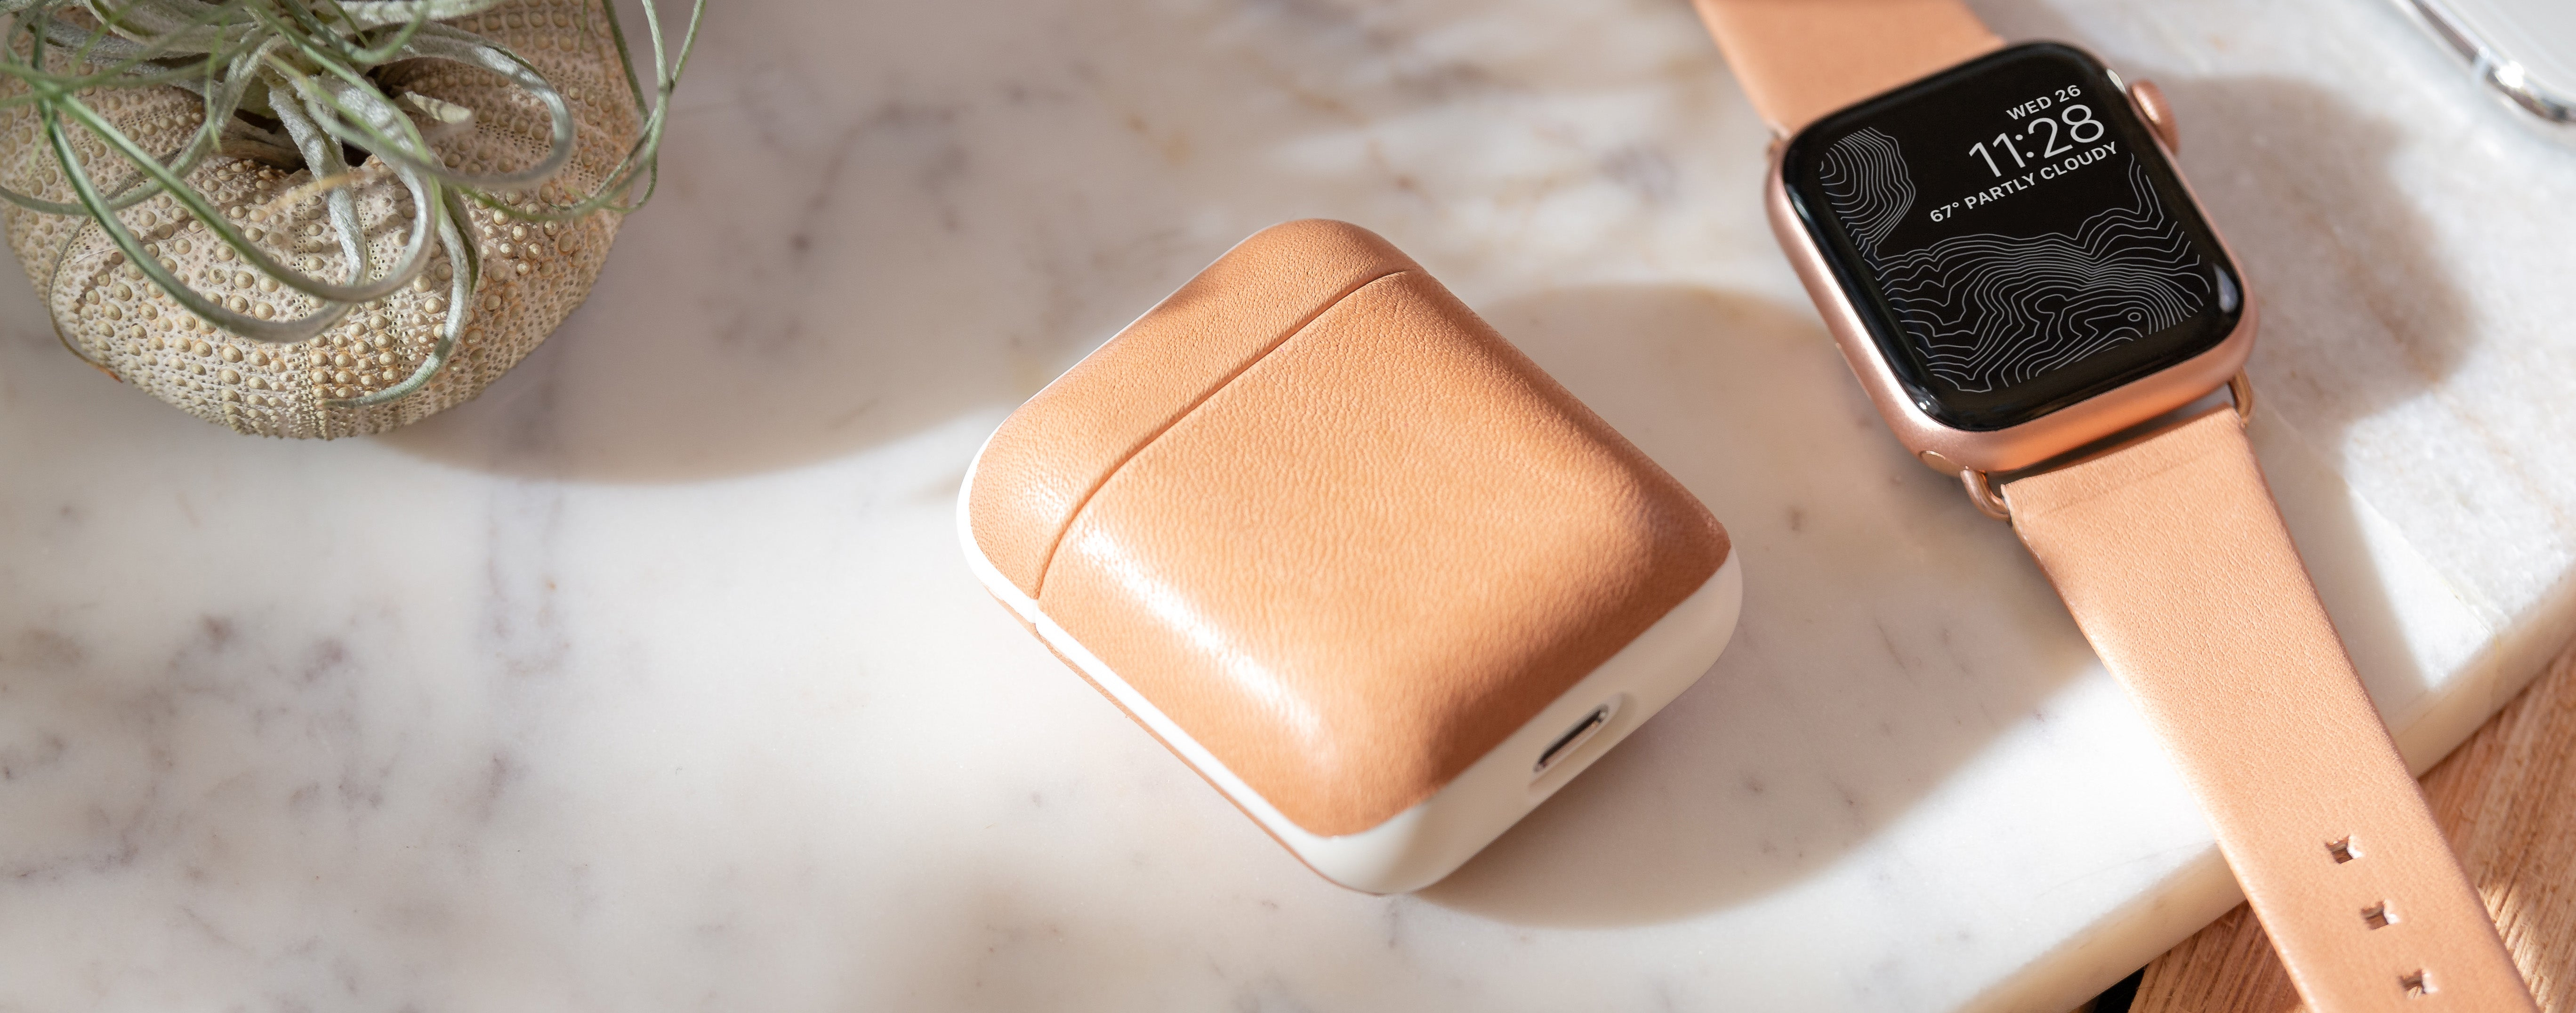 Closed Rugged Case in Natural Nude lying next to an Apple Watch